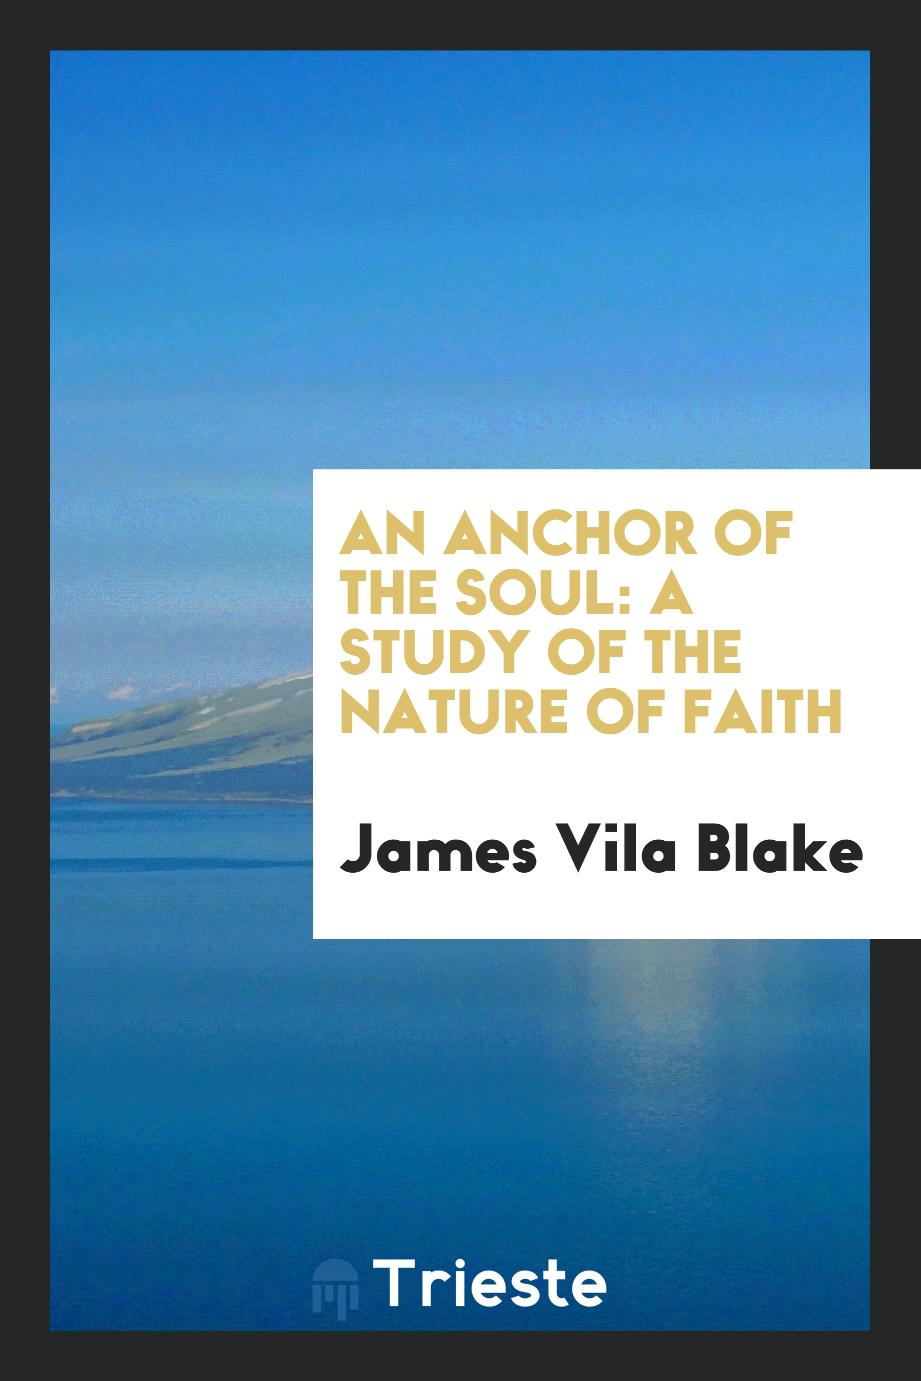 An Anchor of the Soul: A Study of the Nature of Faith